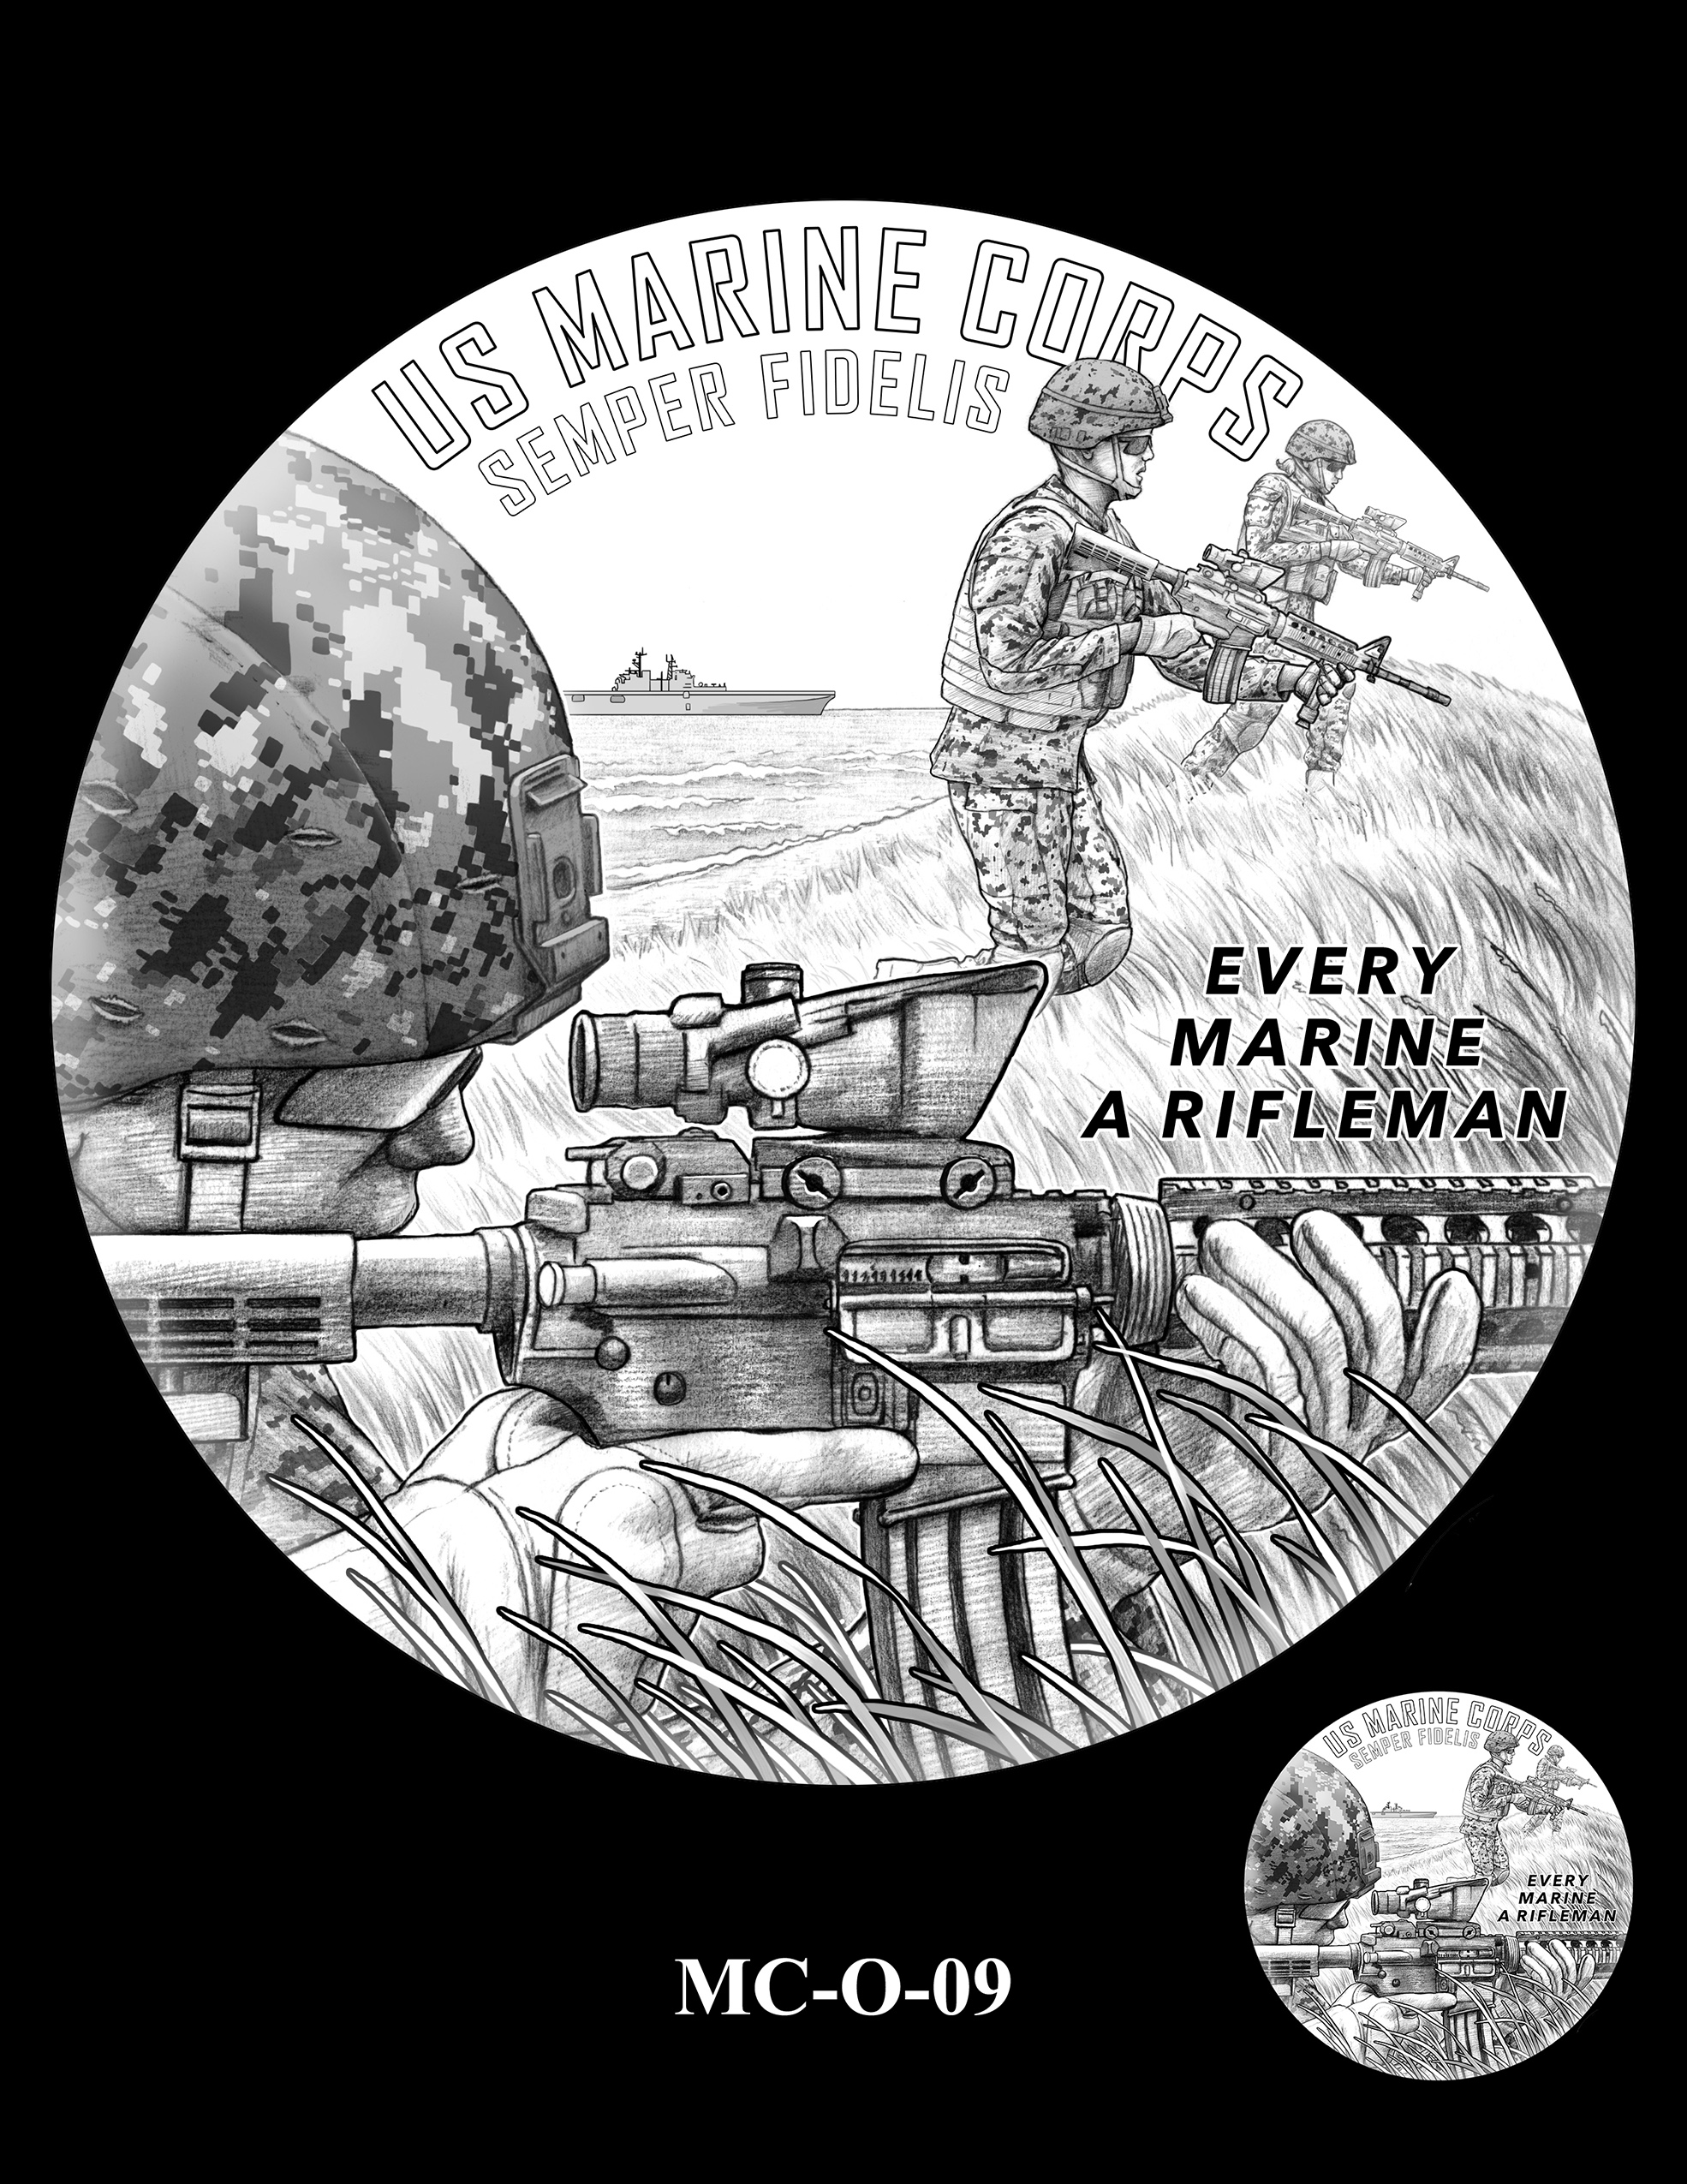 MC-O-09 -- United States Marine Corps Silver Medal